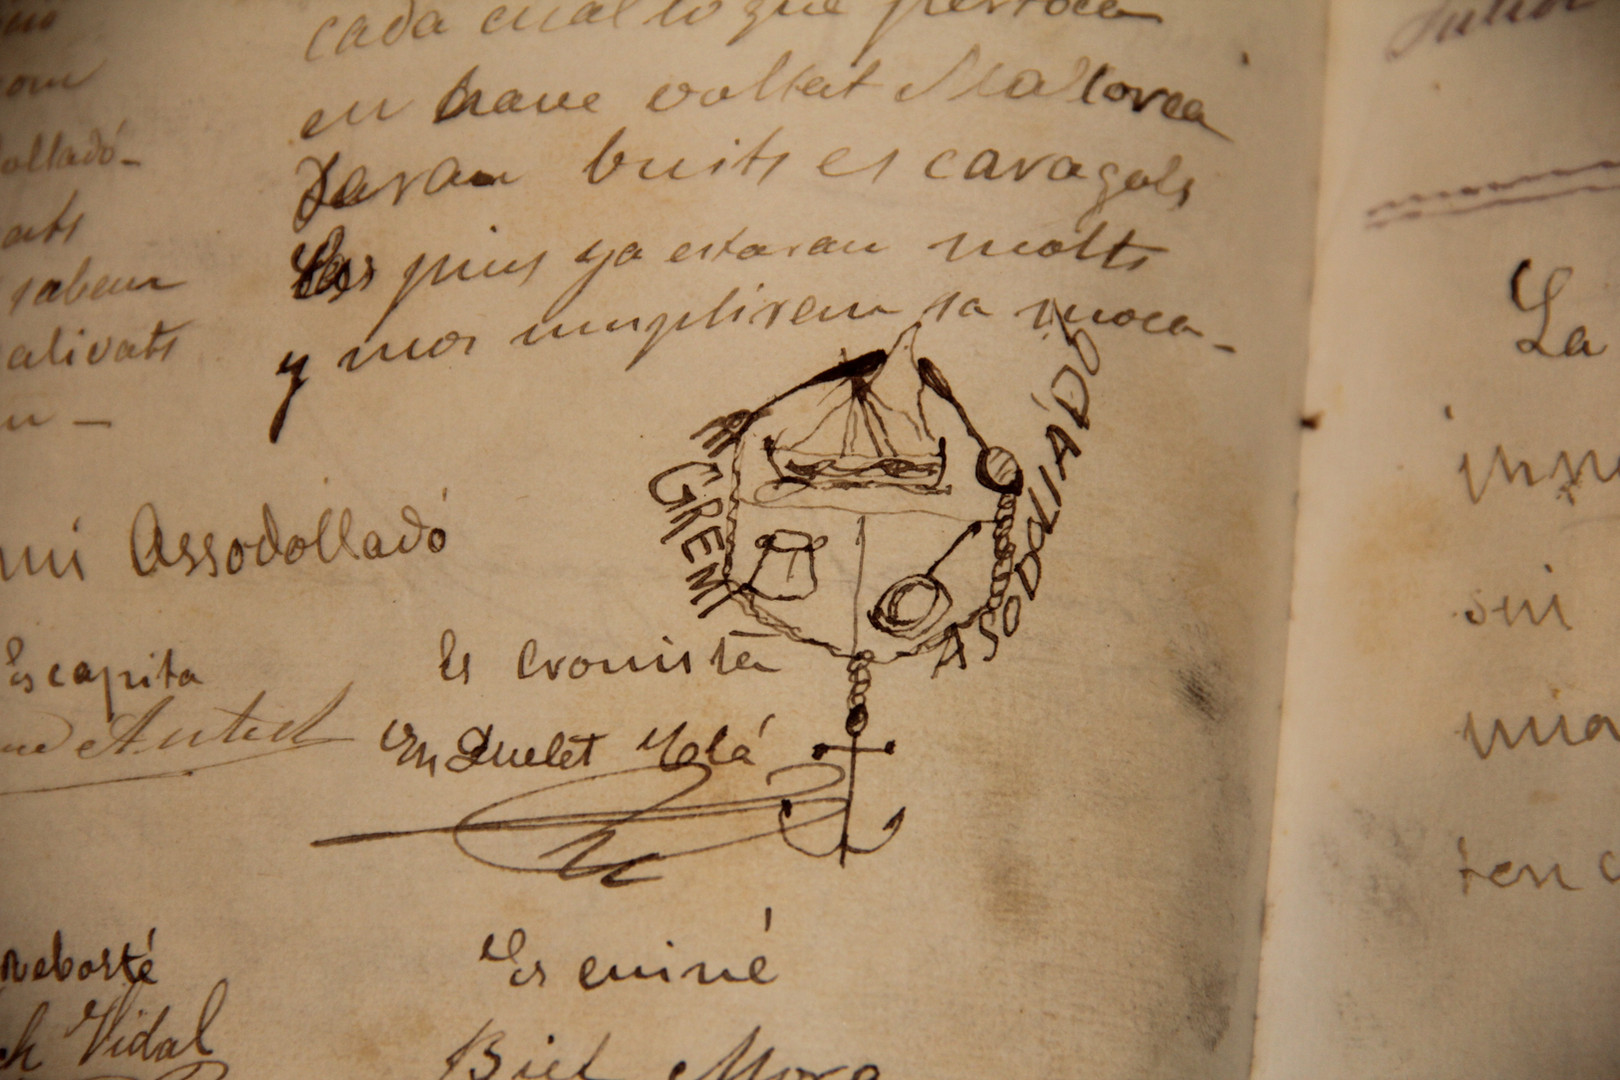 """Glosa by Llorenç Bonet and signatures of the rest of the expeditioners on the """"San Miguel"""" in the Caves of Artà visitors' book (courtesy of the Caves of Artà)."""